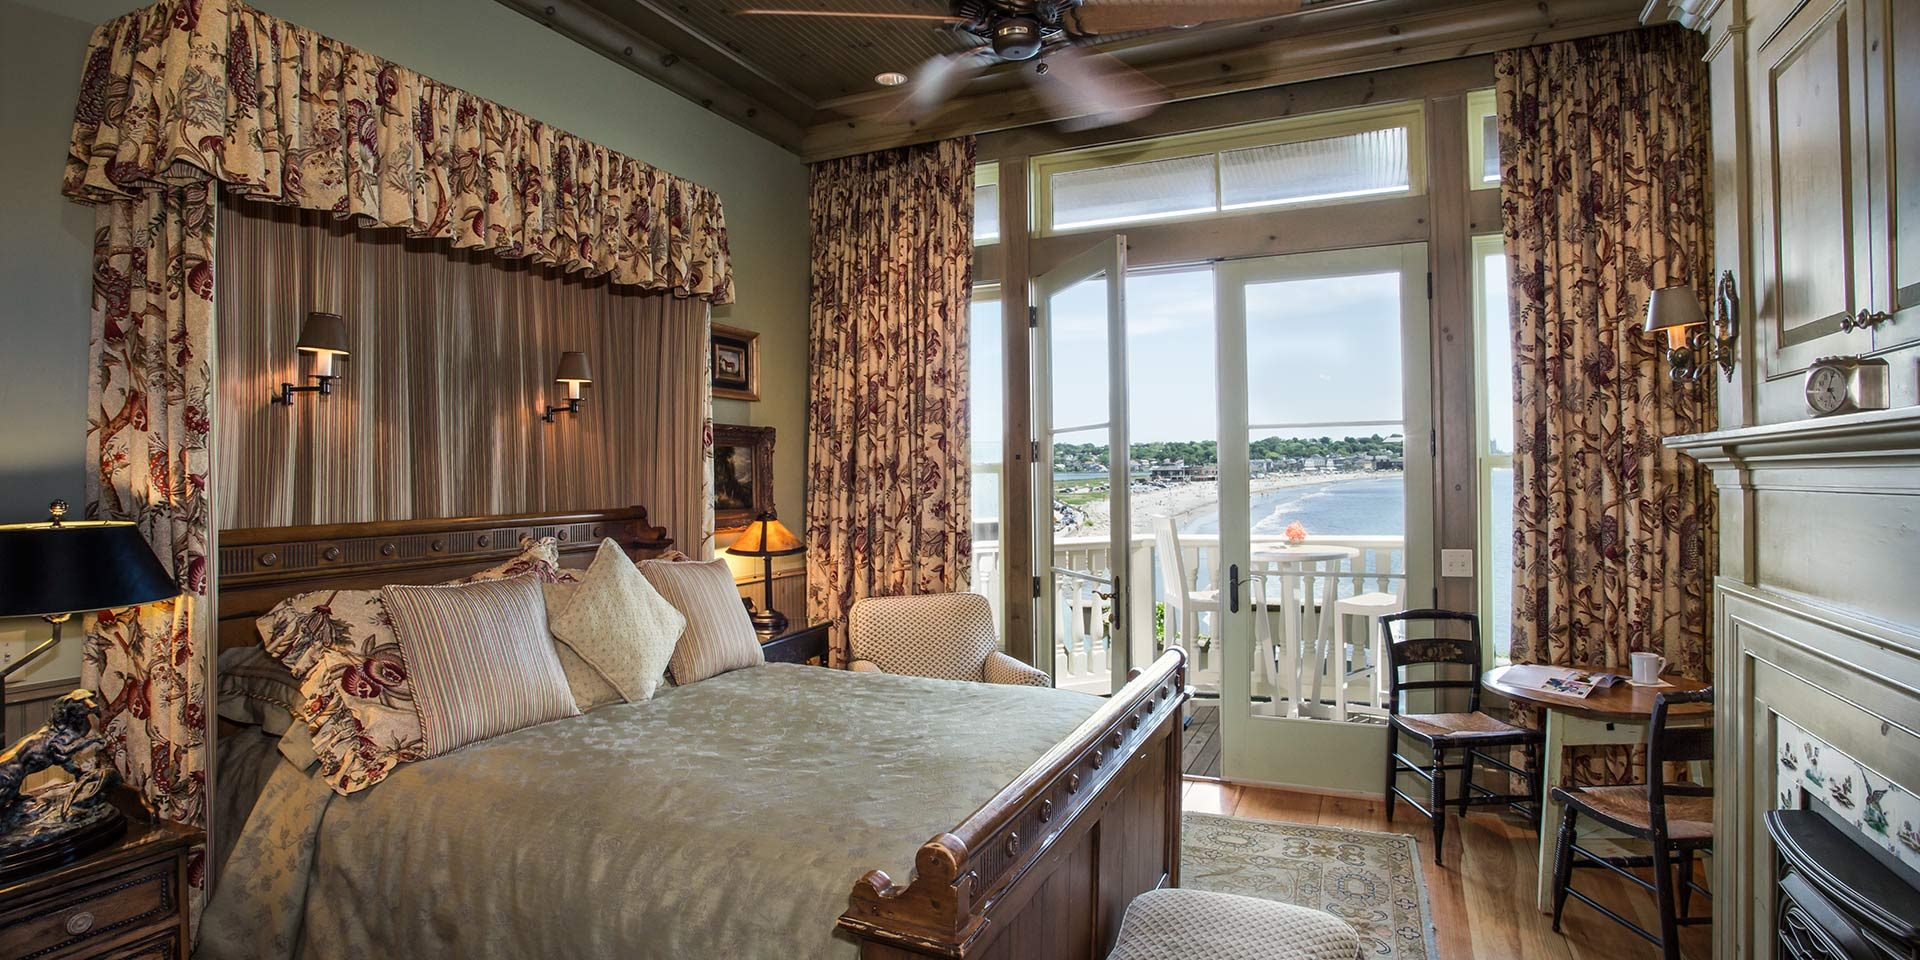 ocean villas at the chanler